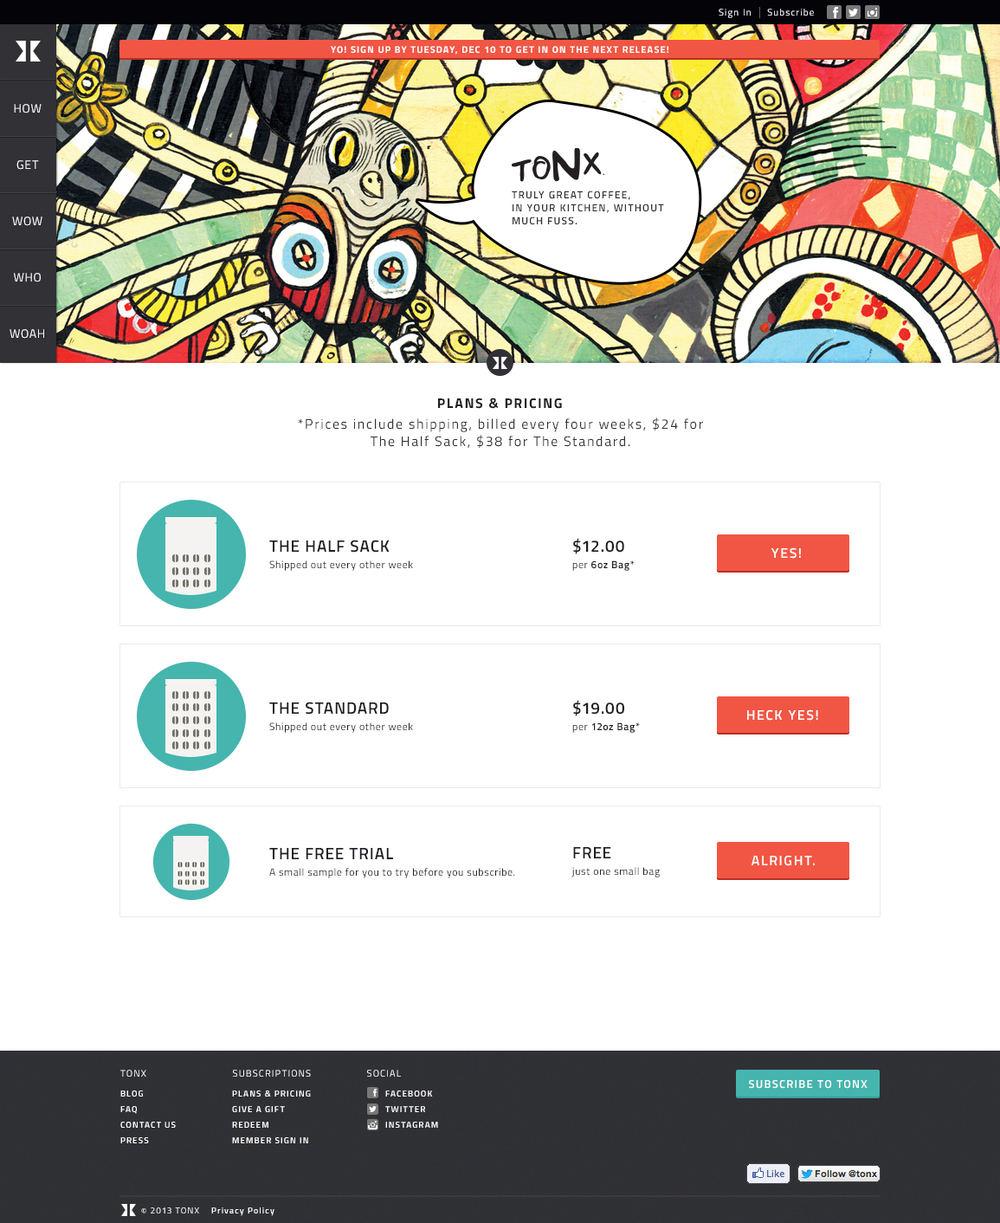 Logged out marketing page - header graphic by Ferris Plock